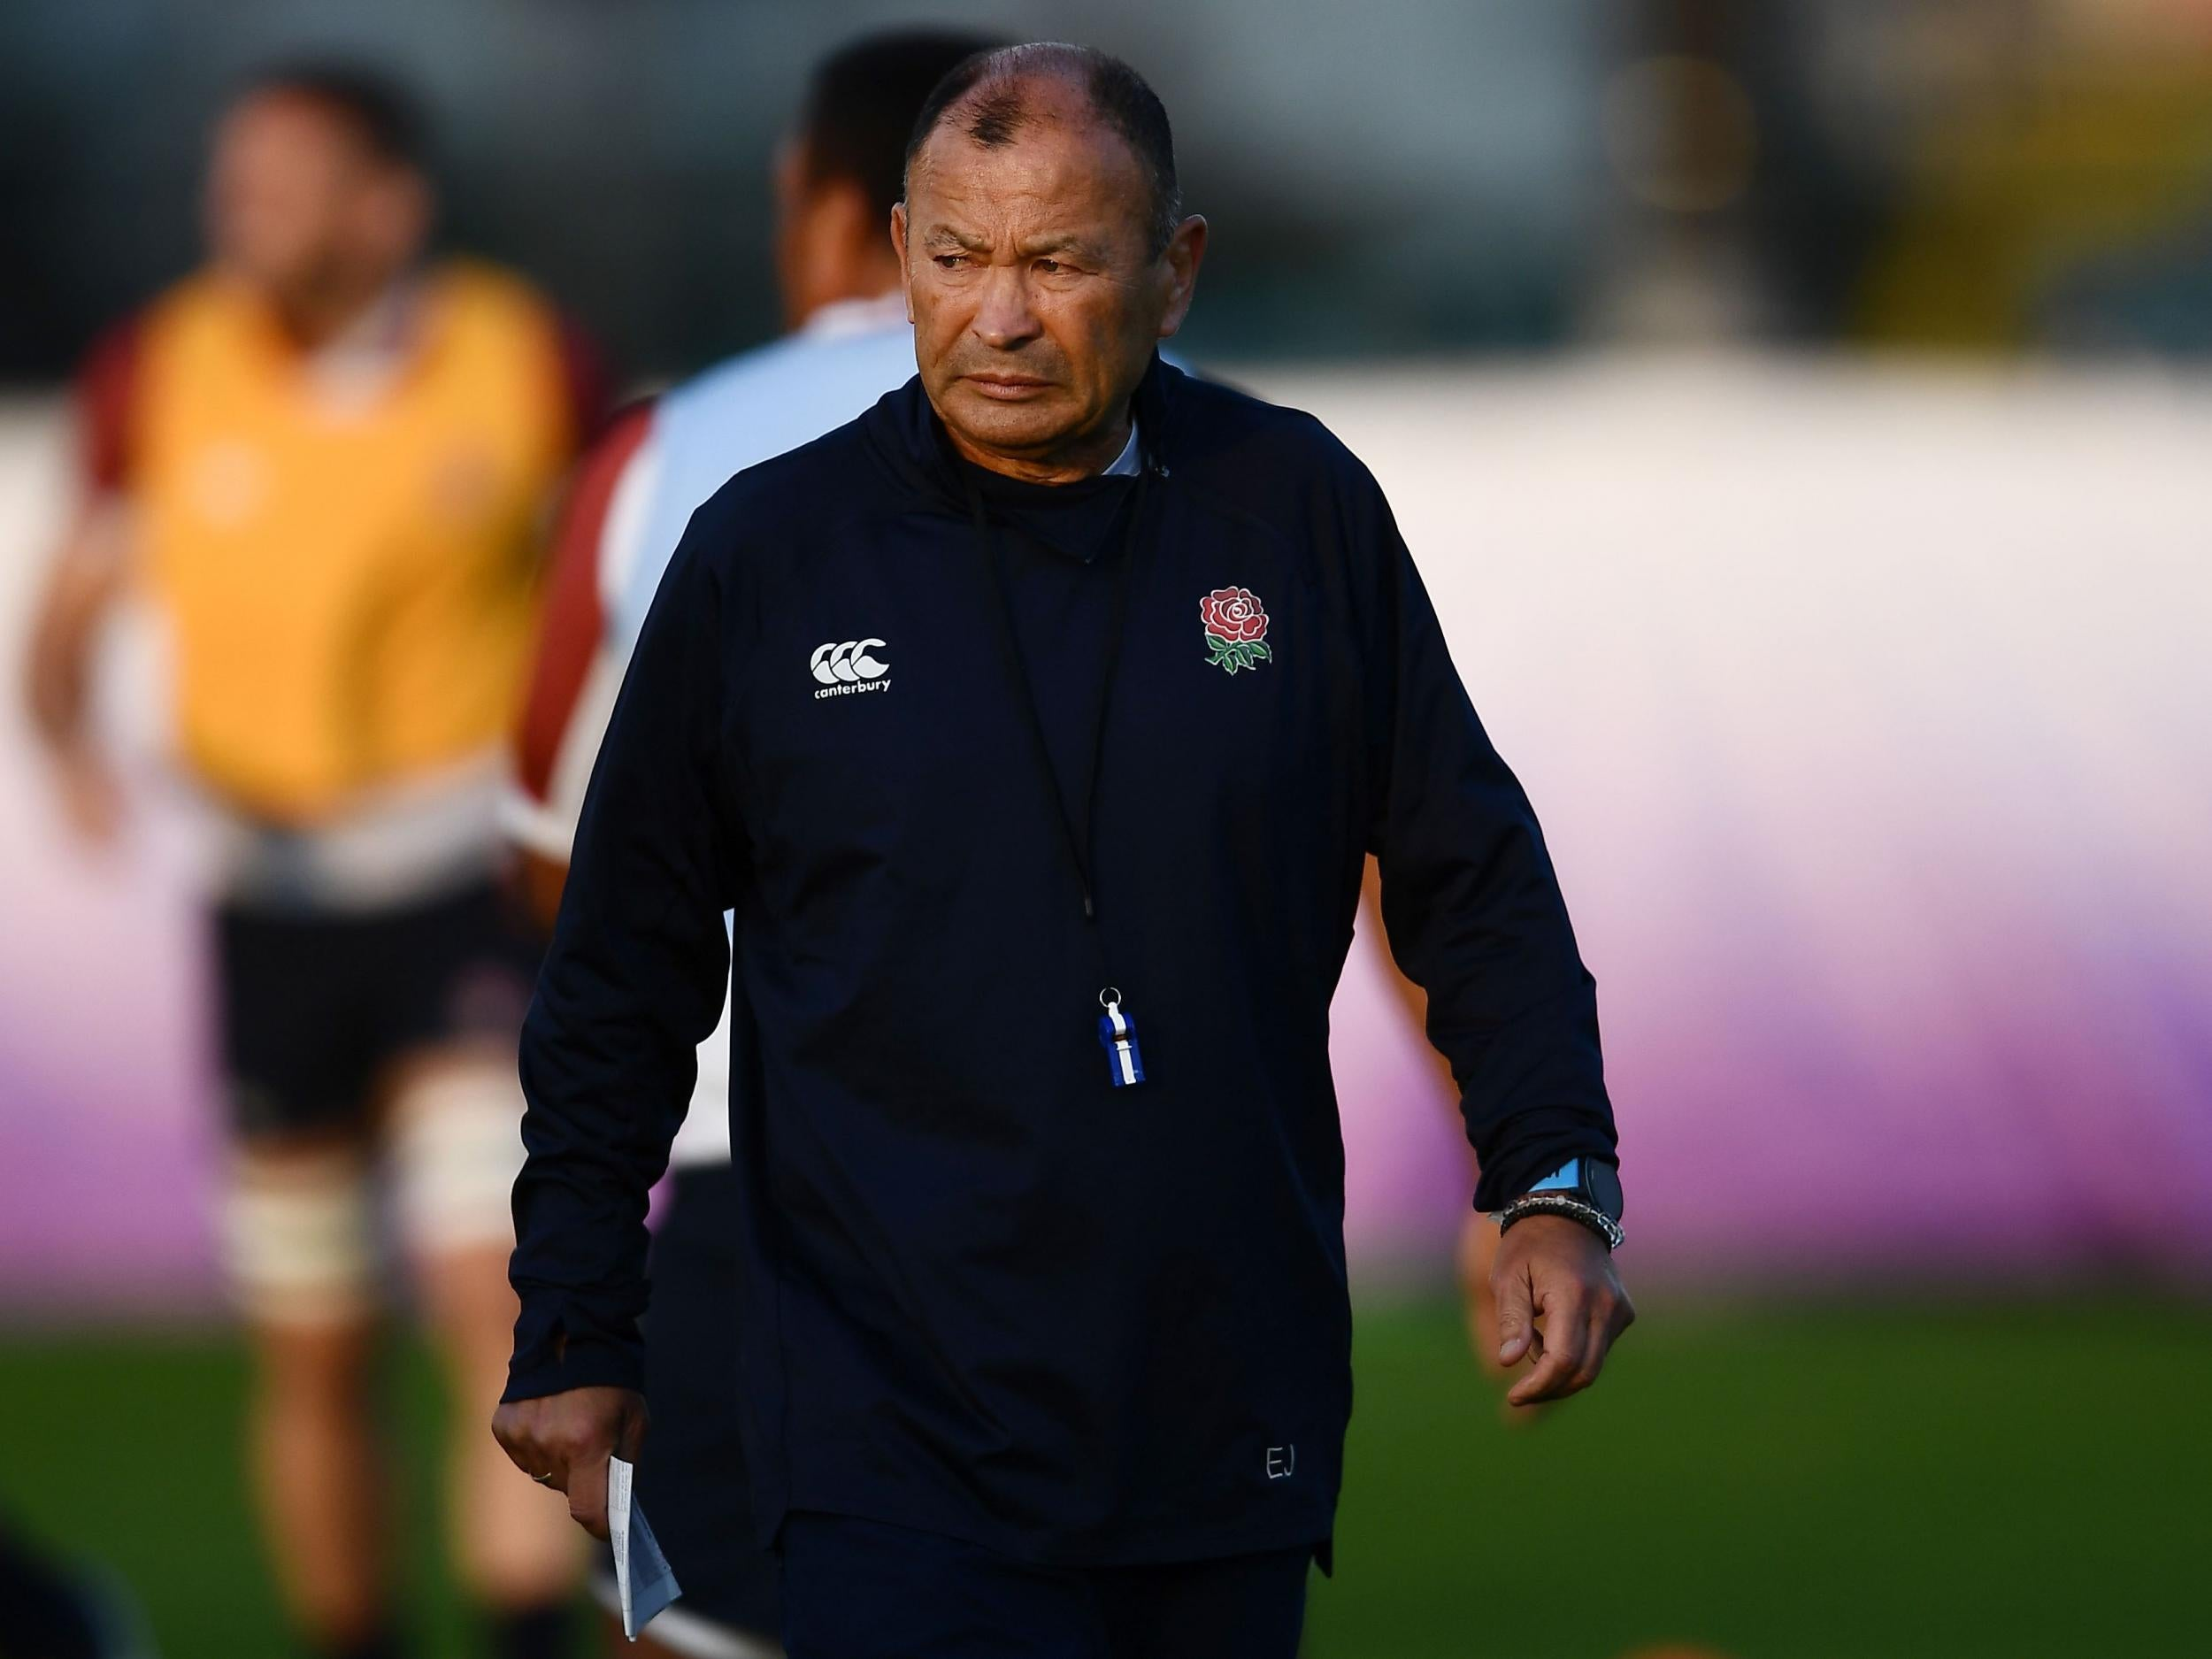 England vs New Zealand predicted team: Who should Eddie Jones select to face the All Blacks?